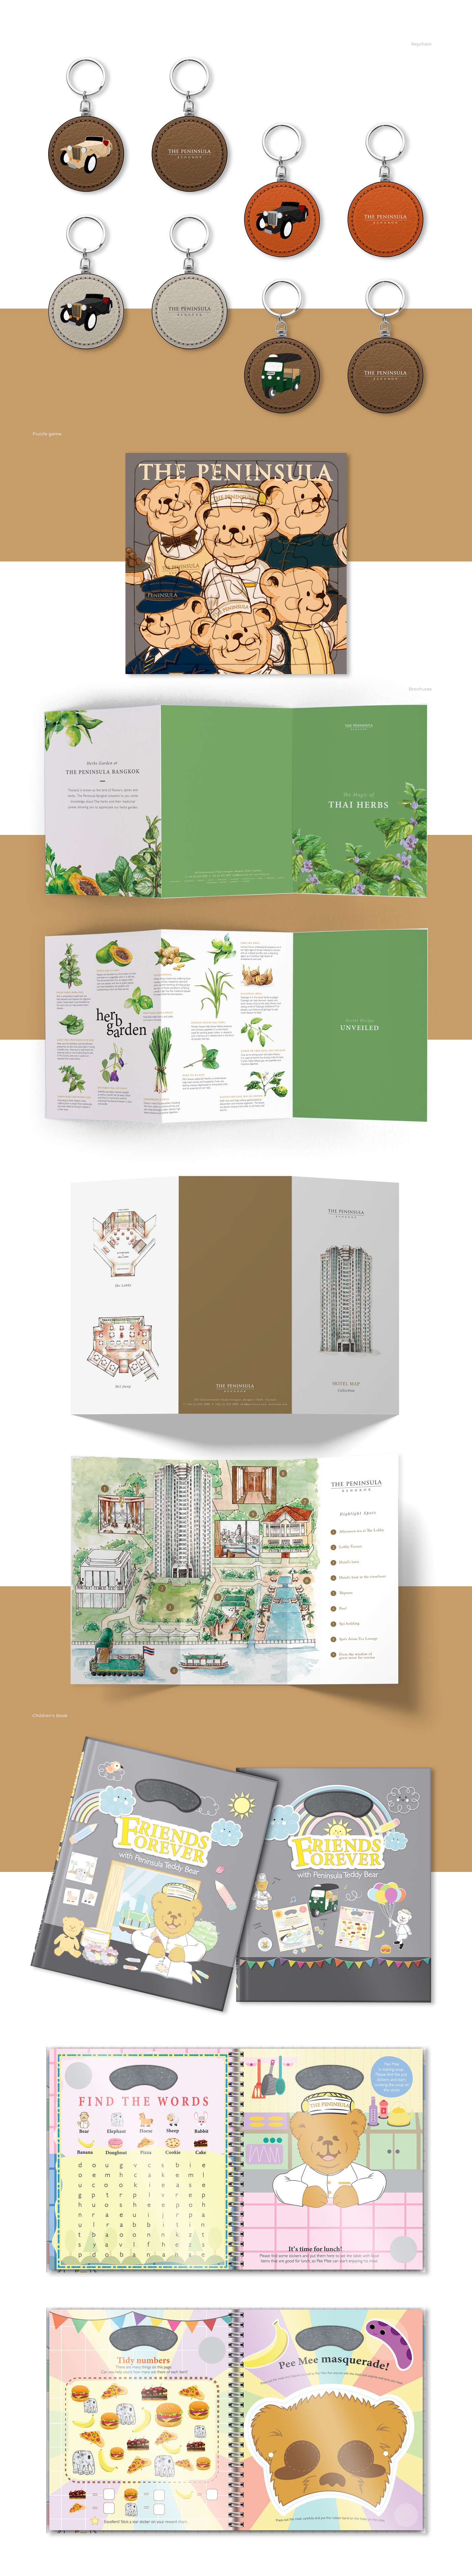 Hotel Branding and Corporate Identity Design